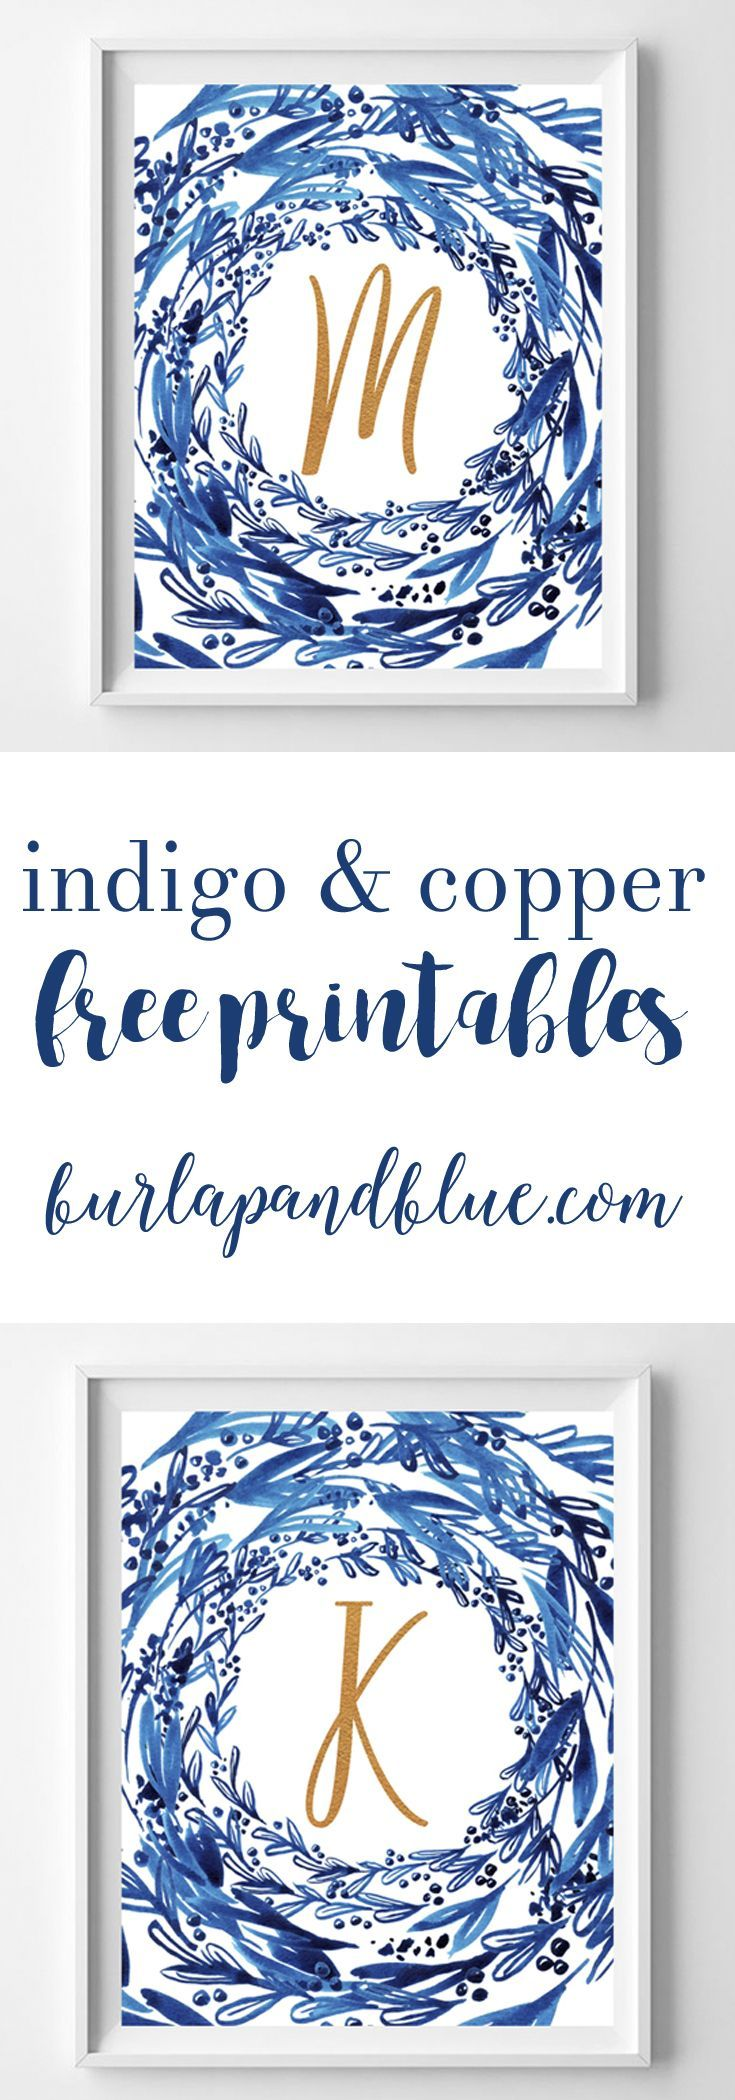 Free watercolor printable initials in indigo and copper. These free printables are the perfect wall art idea or gift!